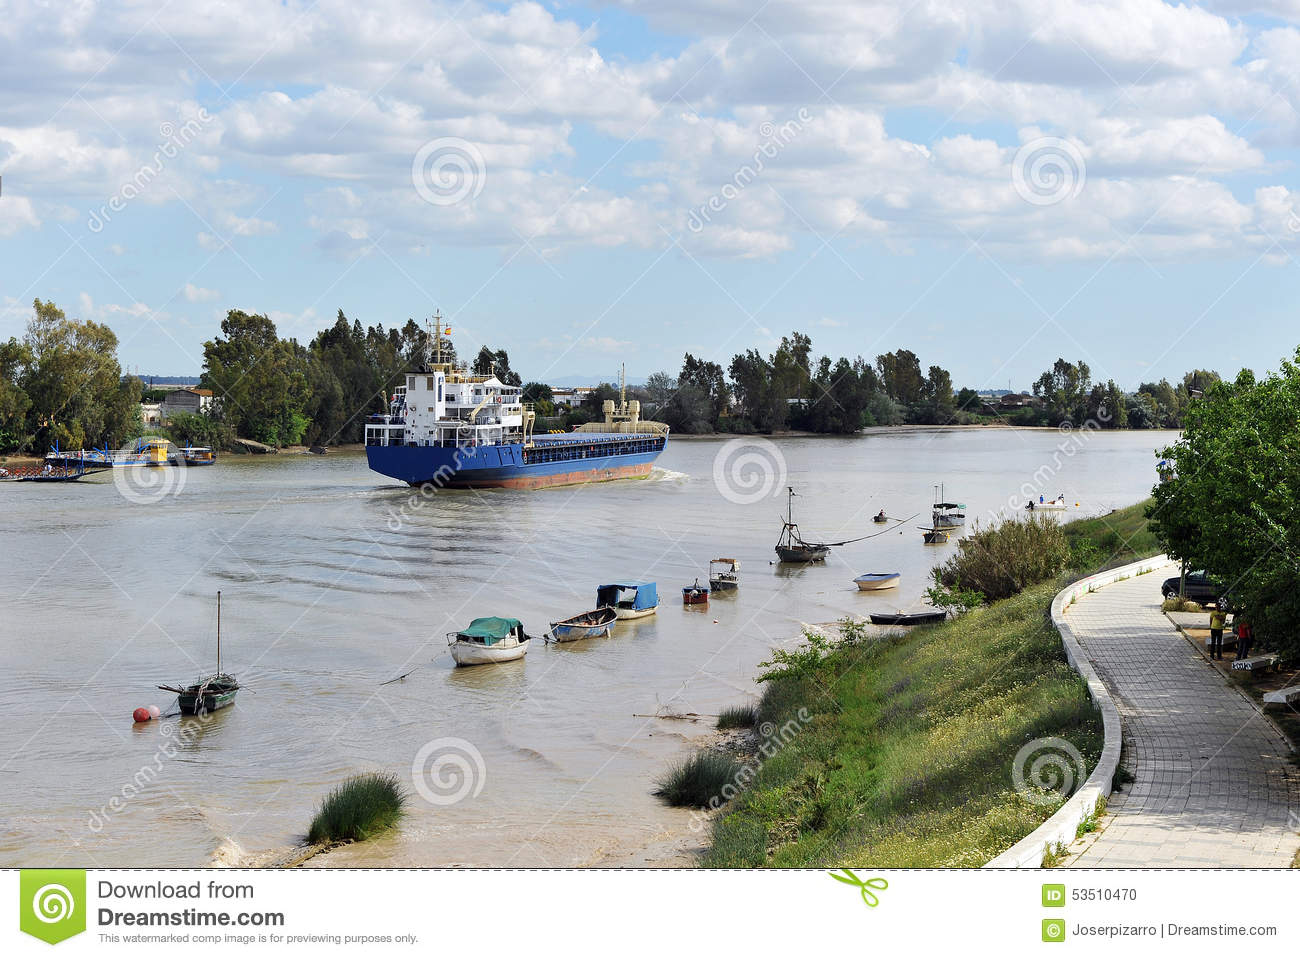 Cargo ship on the river Guadalquivir in its passage through Coria del Río, Sevilla, Andalucía, Spain